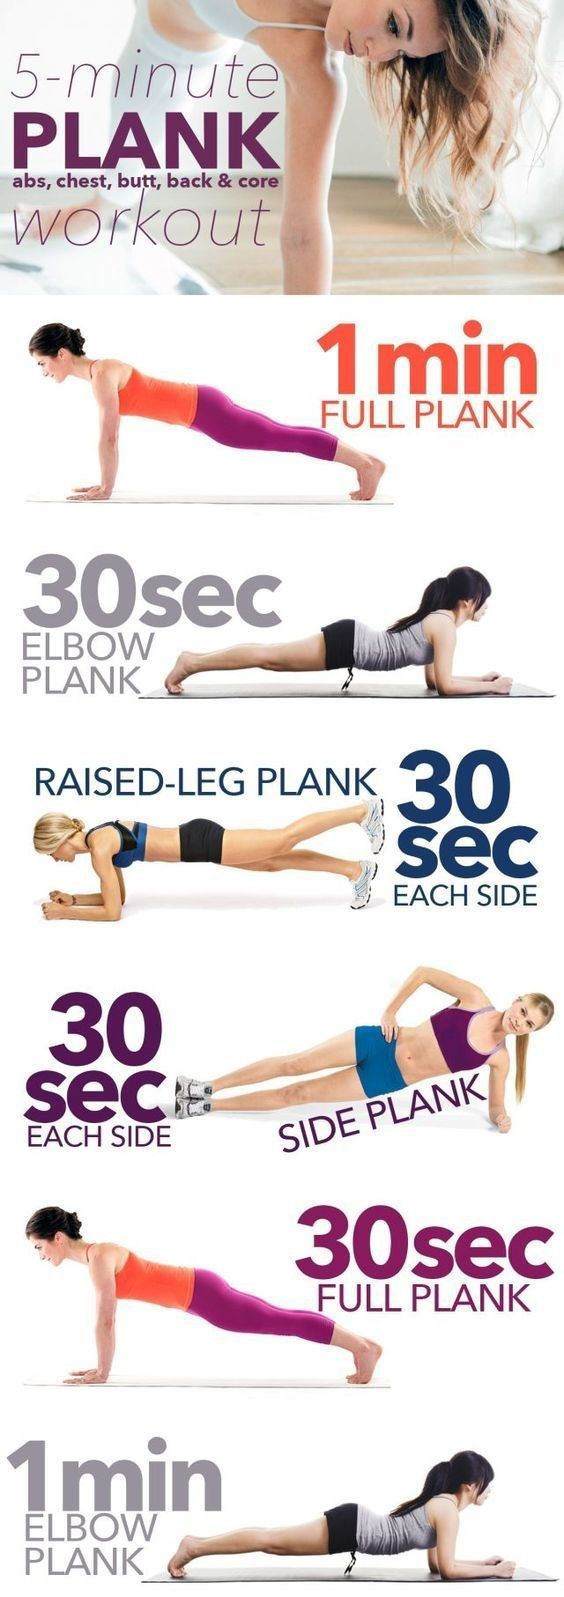 The perfect weight range for women varies according to who you ask and which cha...